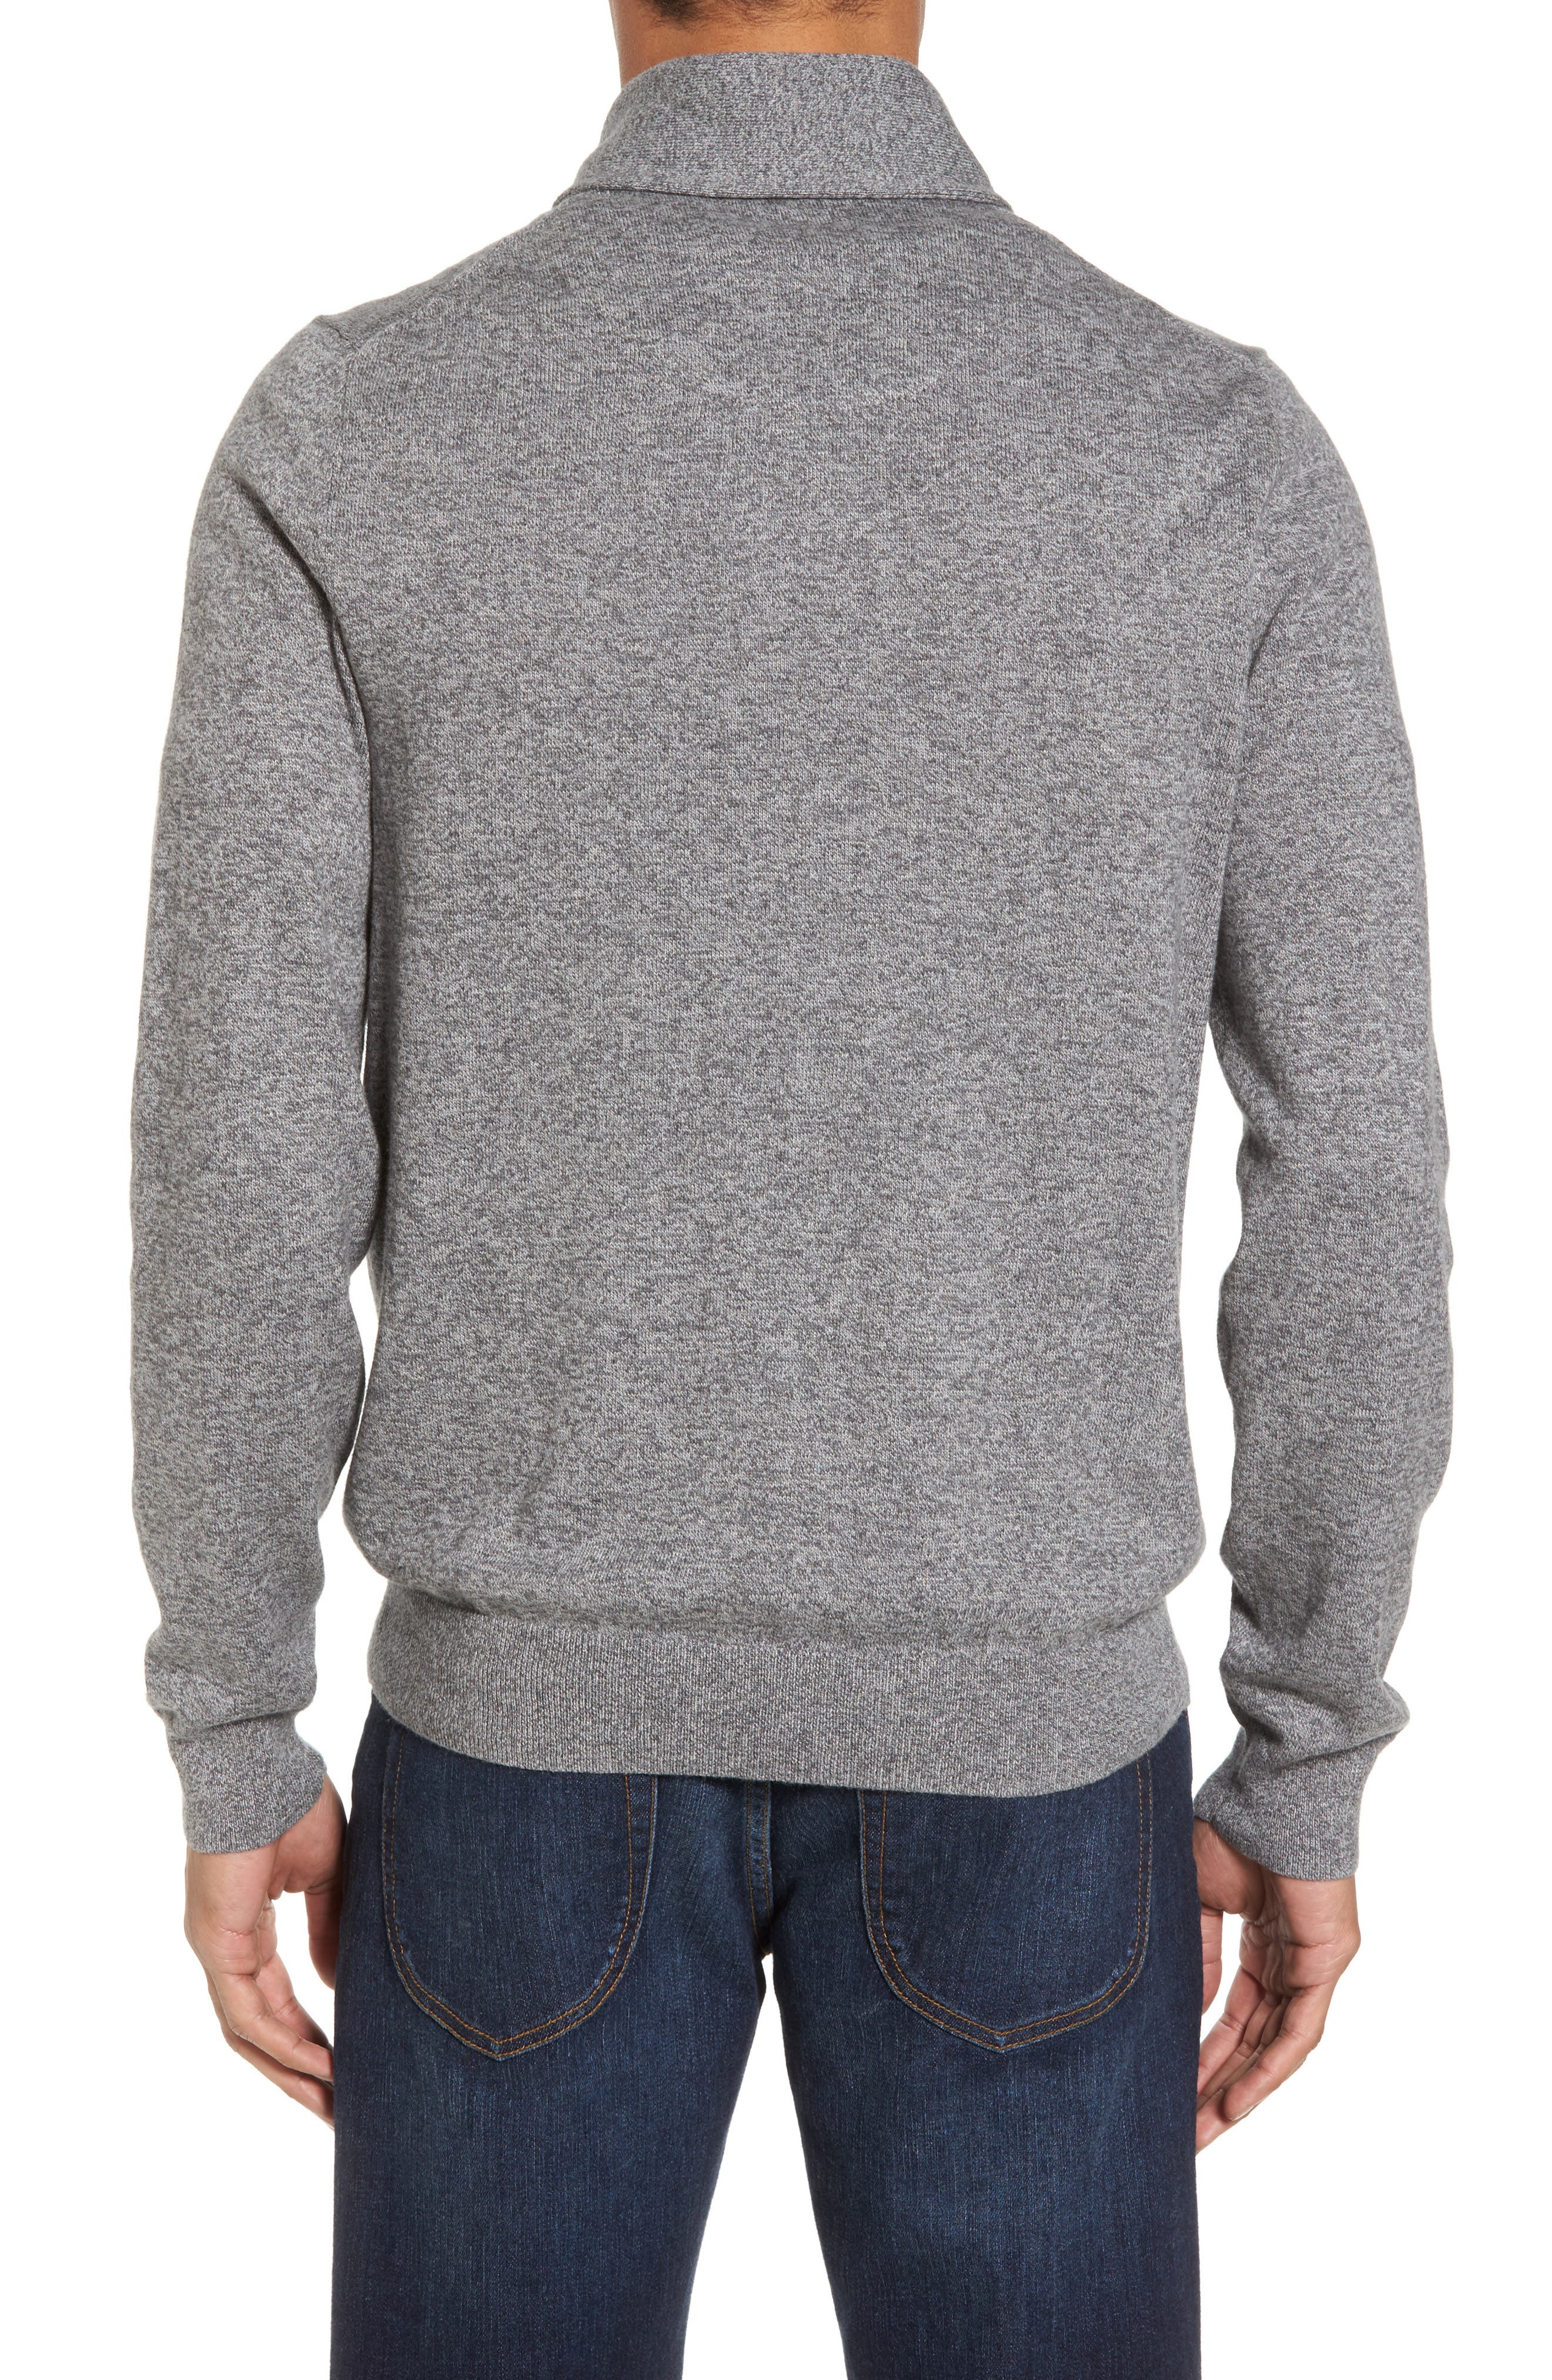 Alternate Image 2  - Nordstrom Men's Shop Cotton & Cashmere Shawl Collar Sweater (Regular & Tall)